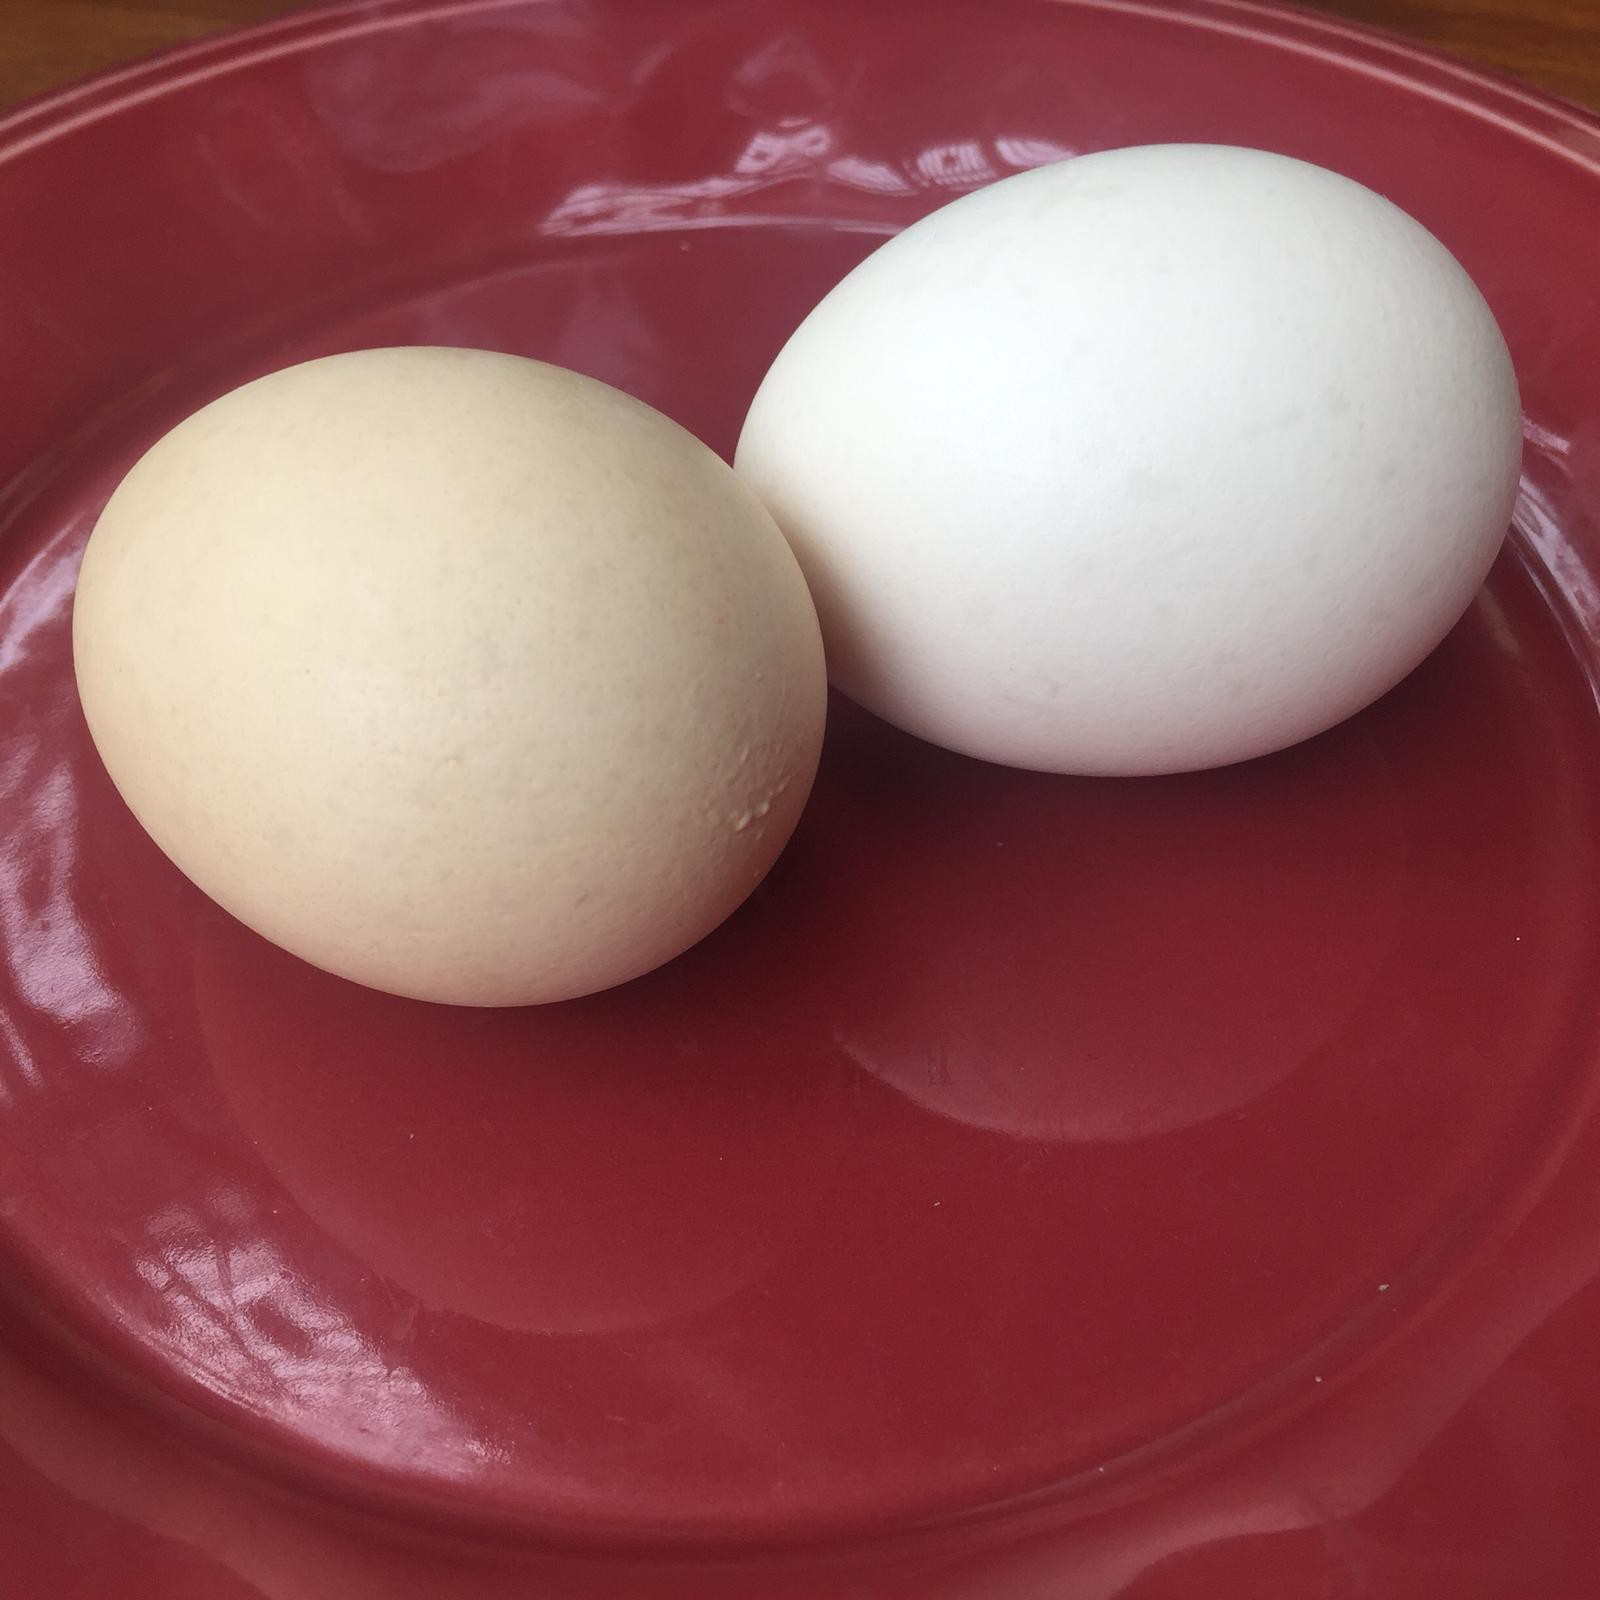 Healthy Egg from Chicken fed with Probiotics (30pcs/box) 益生菌飼養無激素雞雞蛋 (30隻/盒)